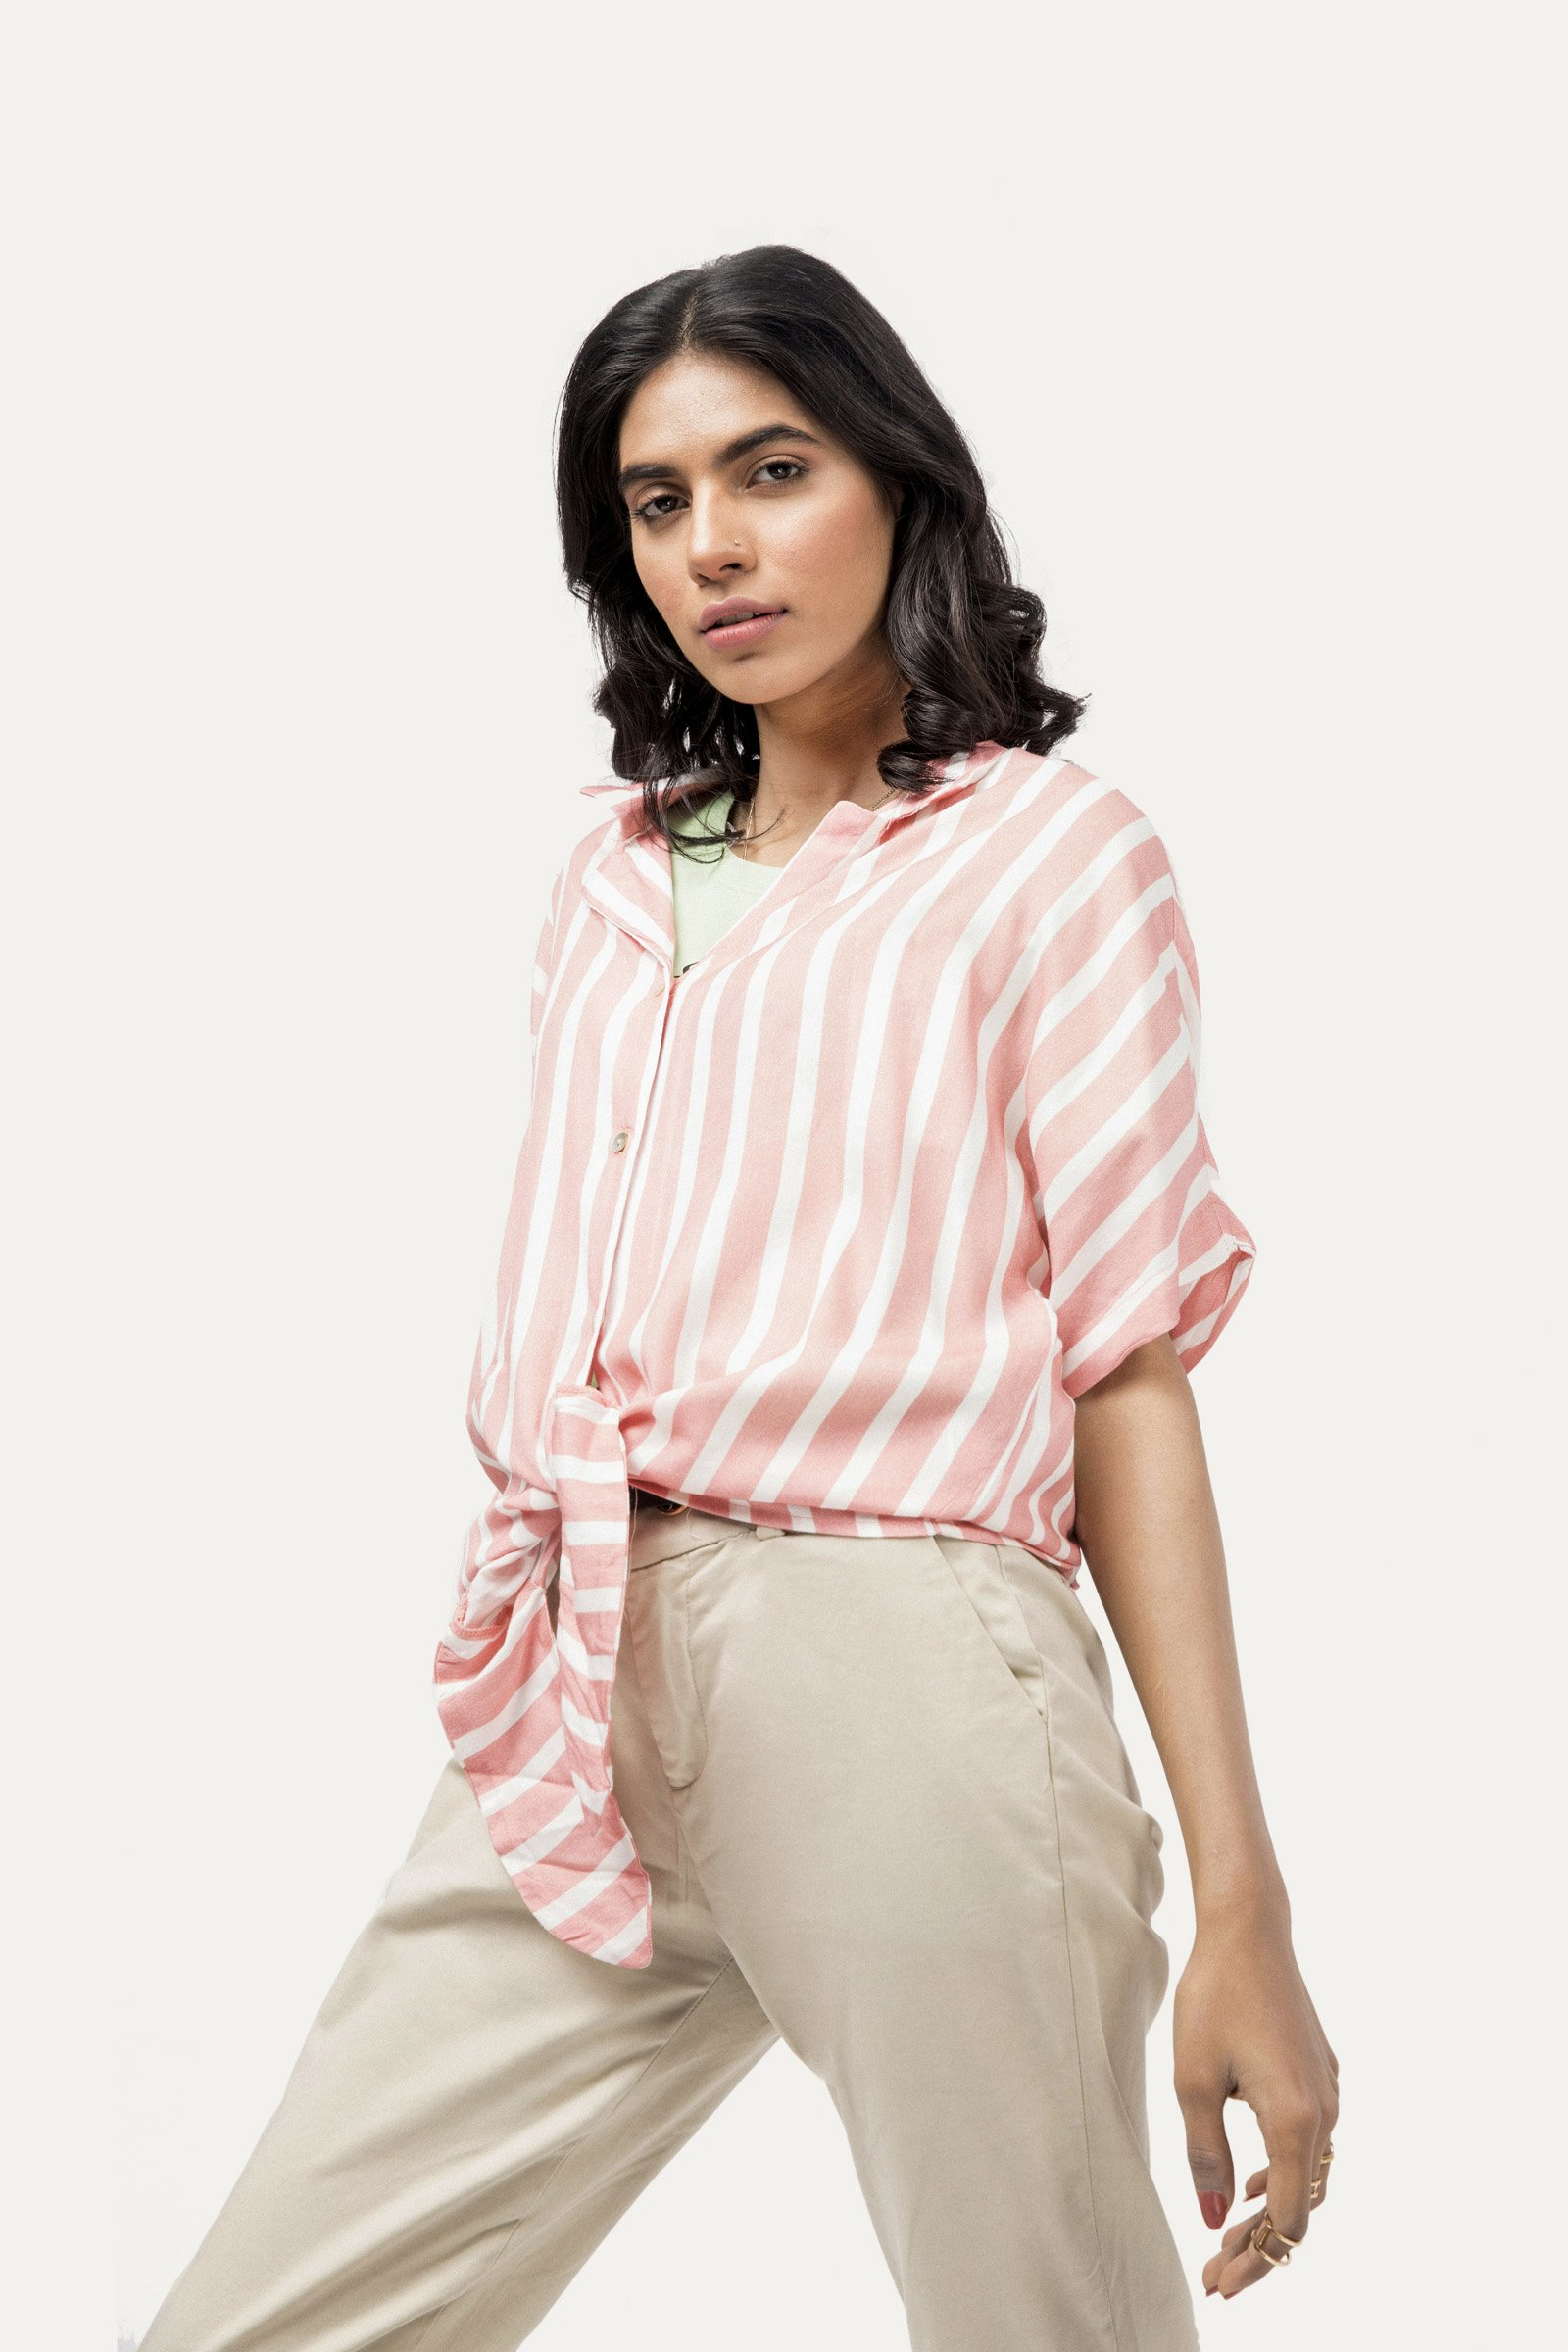 Stripped Shirt Outfitters